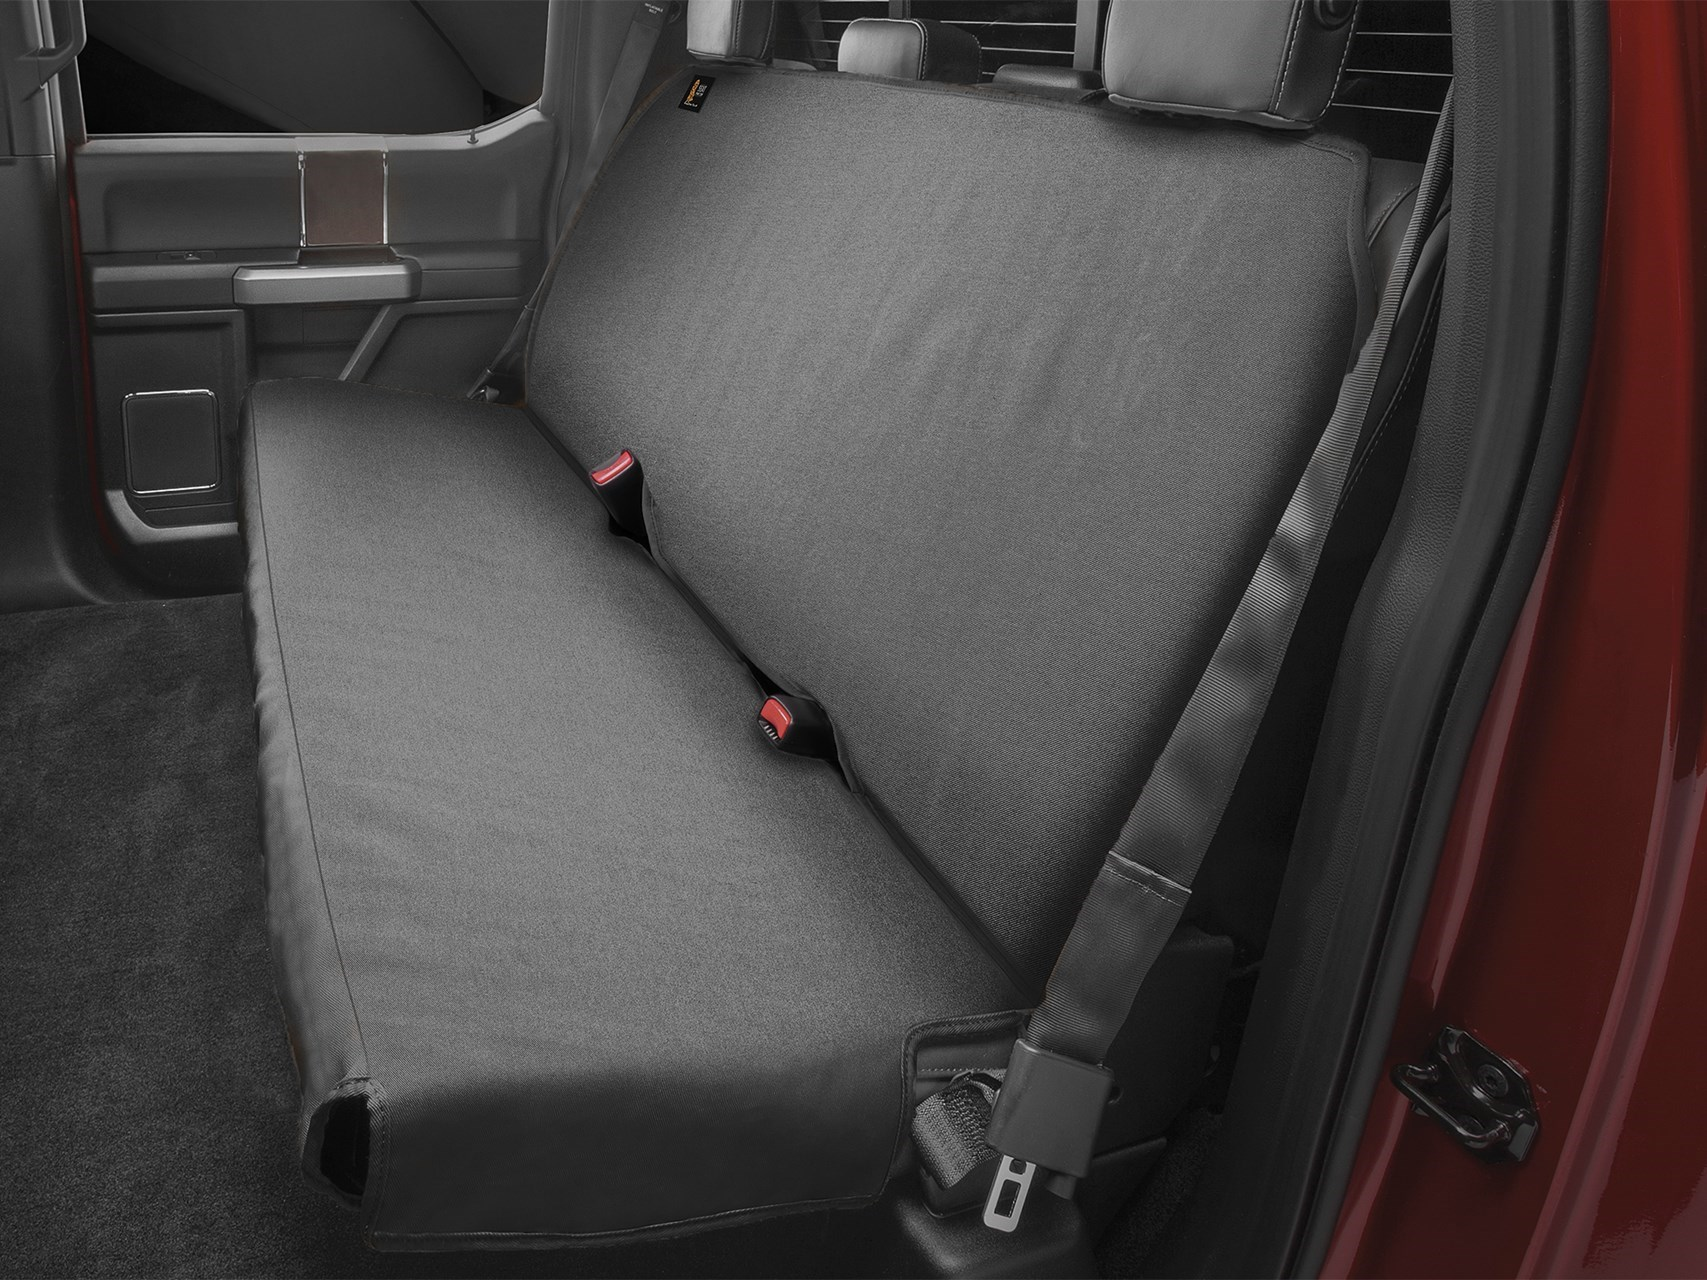 2005 Ford Freestyle Seat Protector Covers For Your Vehicle Weathertech